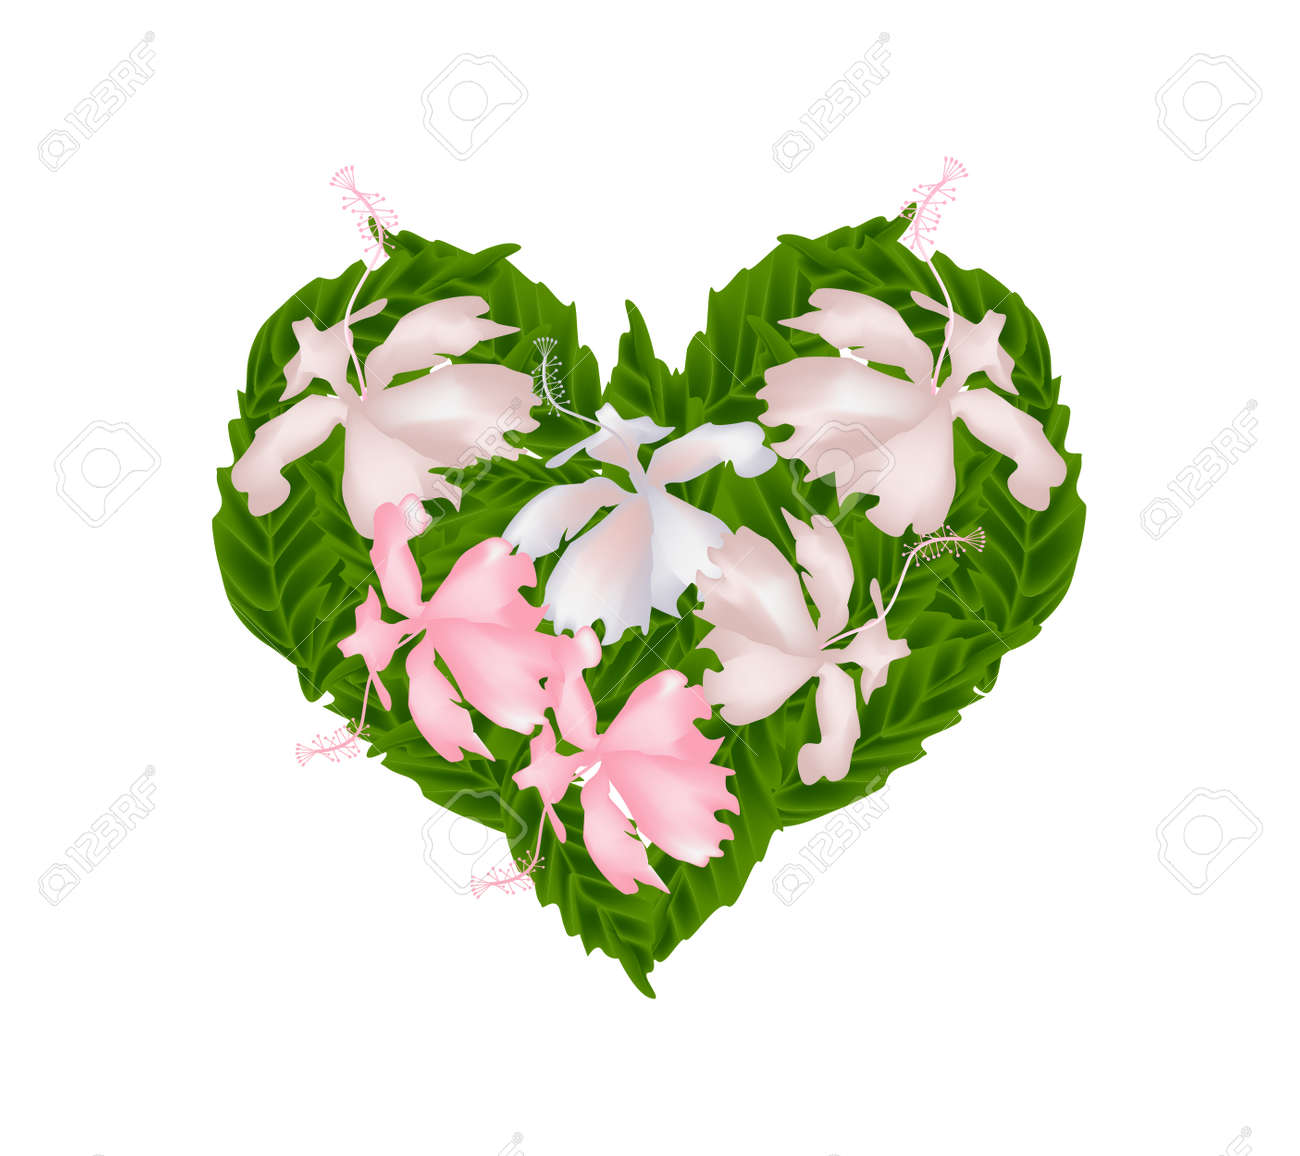 Love Concept Illustration Of Pink Hibiscus Flowers Or Pink Rose